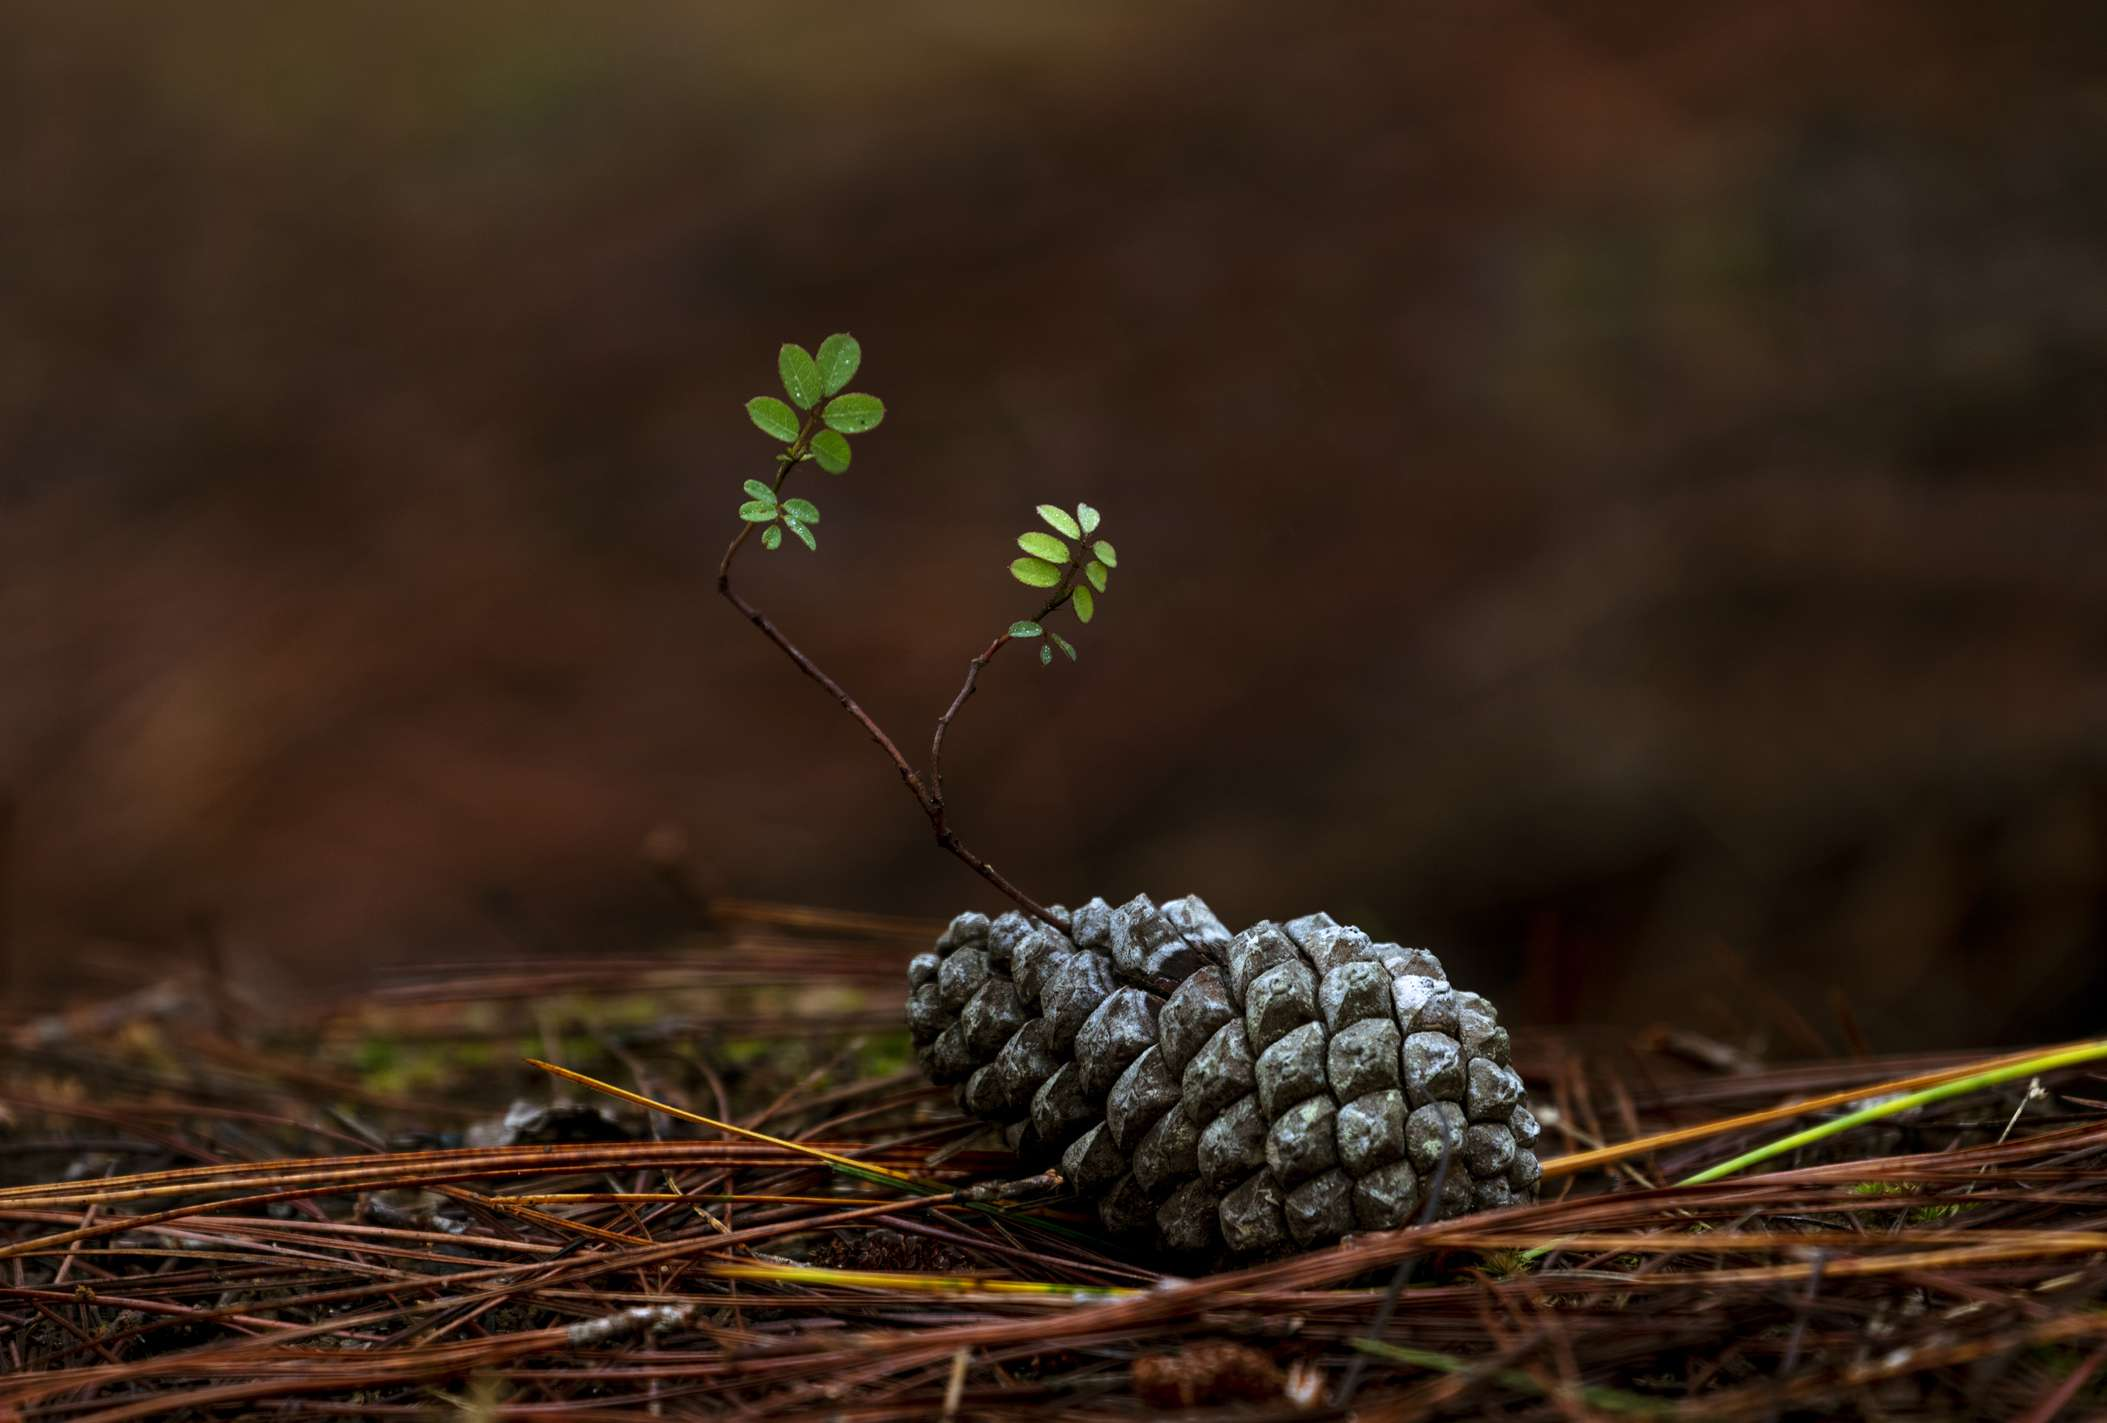 Pine cone growing a small tree out of its cone.